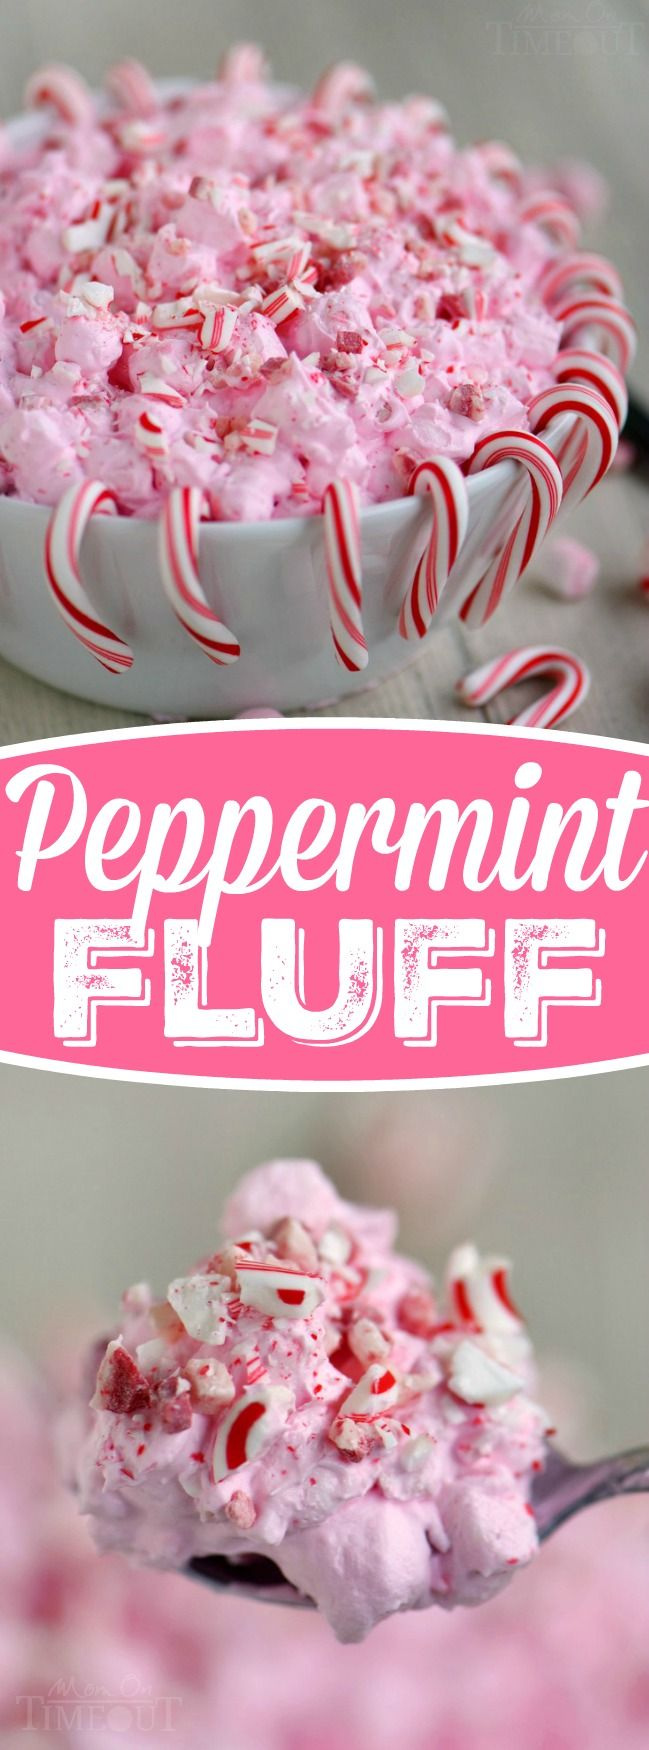 I've got the prettiest, two minute dessert you're going to make all holiday season long for you today! This Peppermint Fluff has just four ingredients and will disappear as quickly as you can make it. Double the recipe for a crowd! | MyRecipeMagic.com